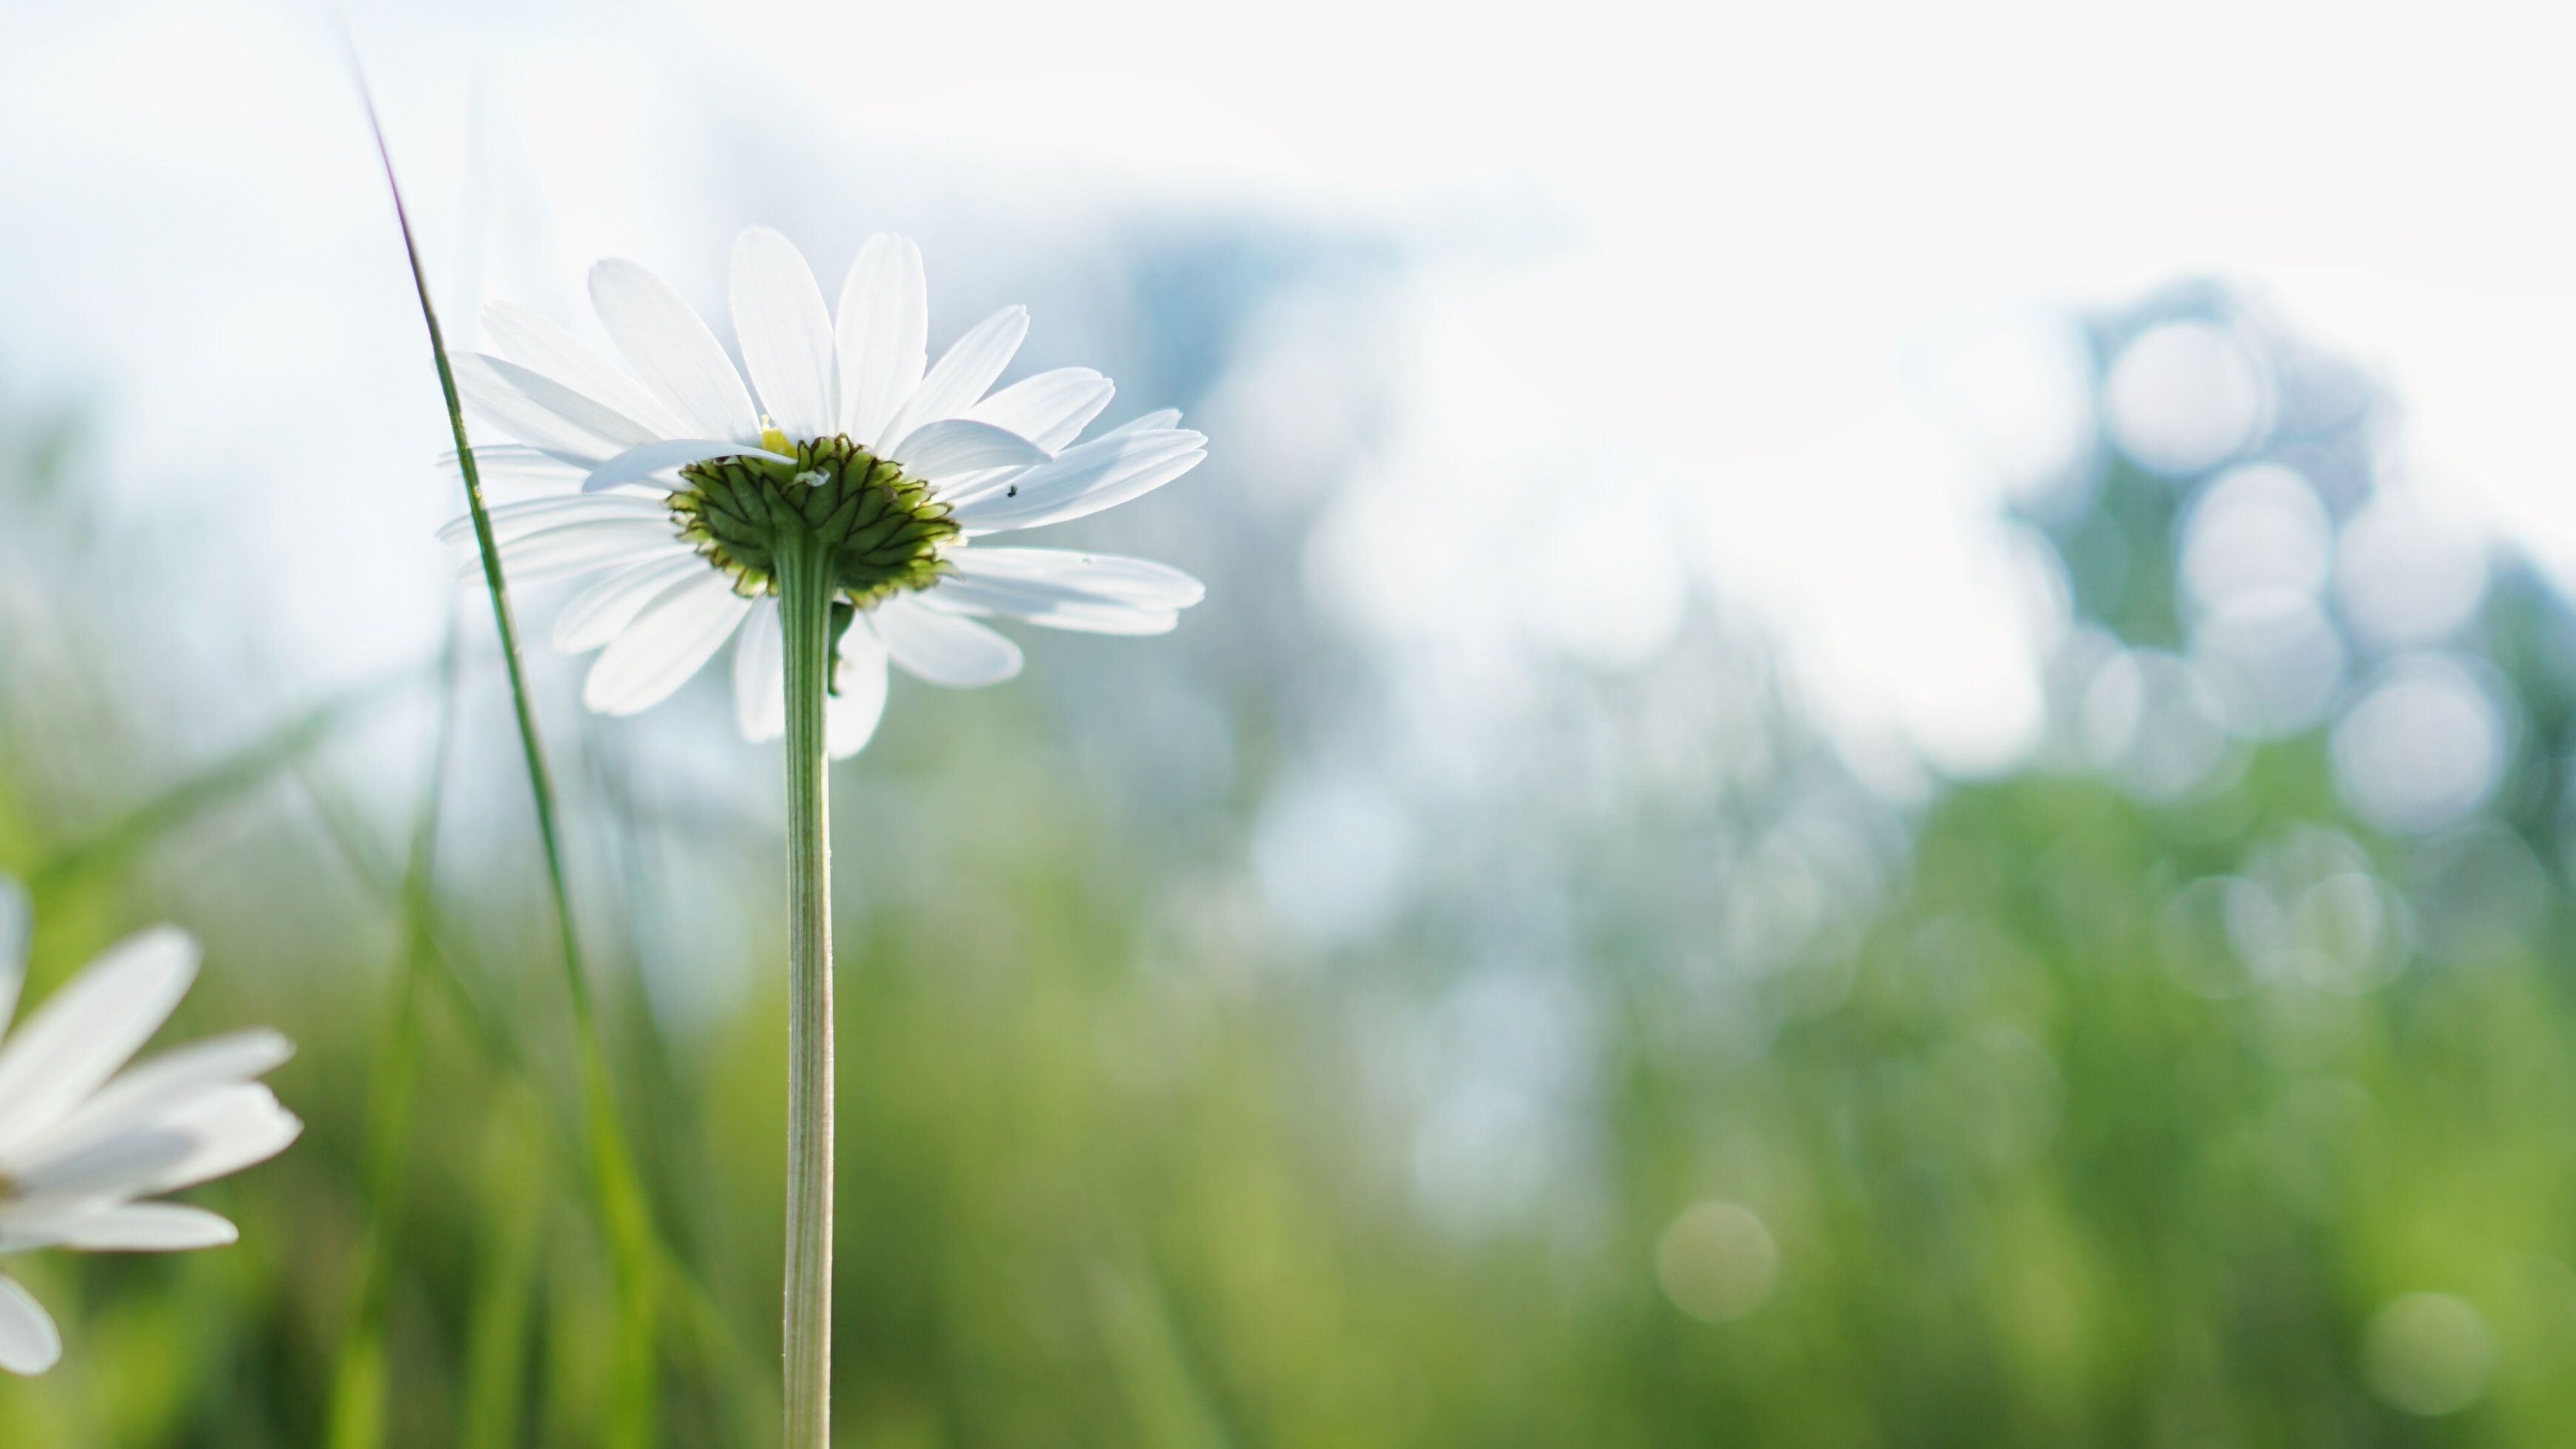 A low-angle shot of a white daisy with bokeh effect in the background